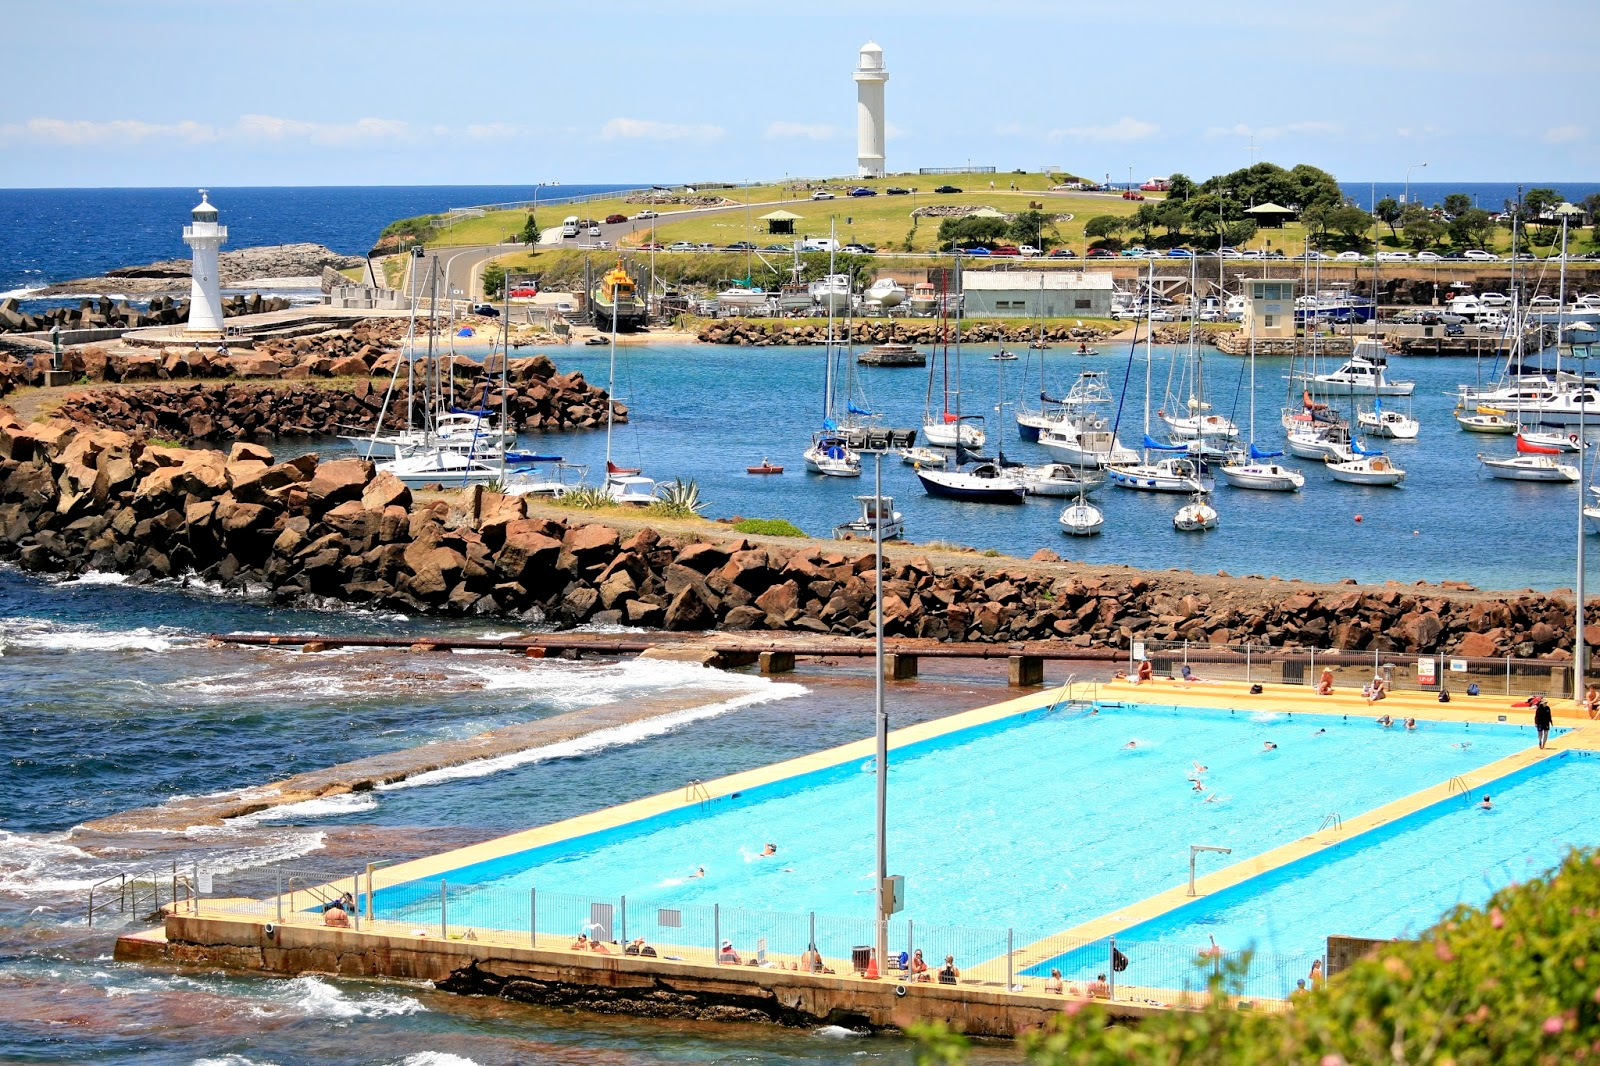 NSW RADIO AND COMMUNICATIONS - by Michael Bailey: WOLLONGONG